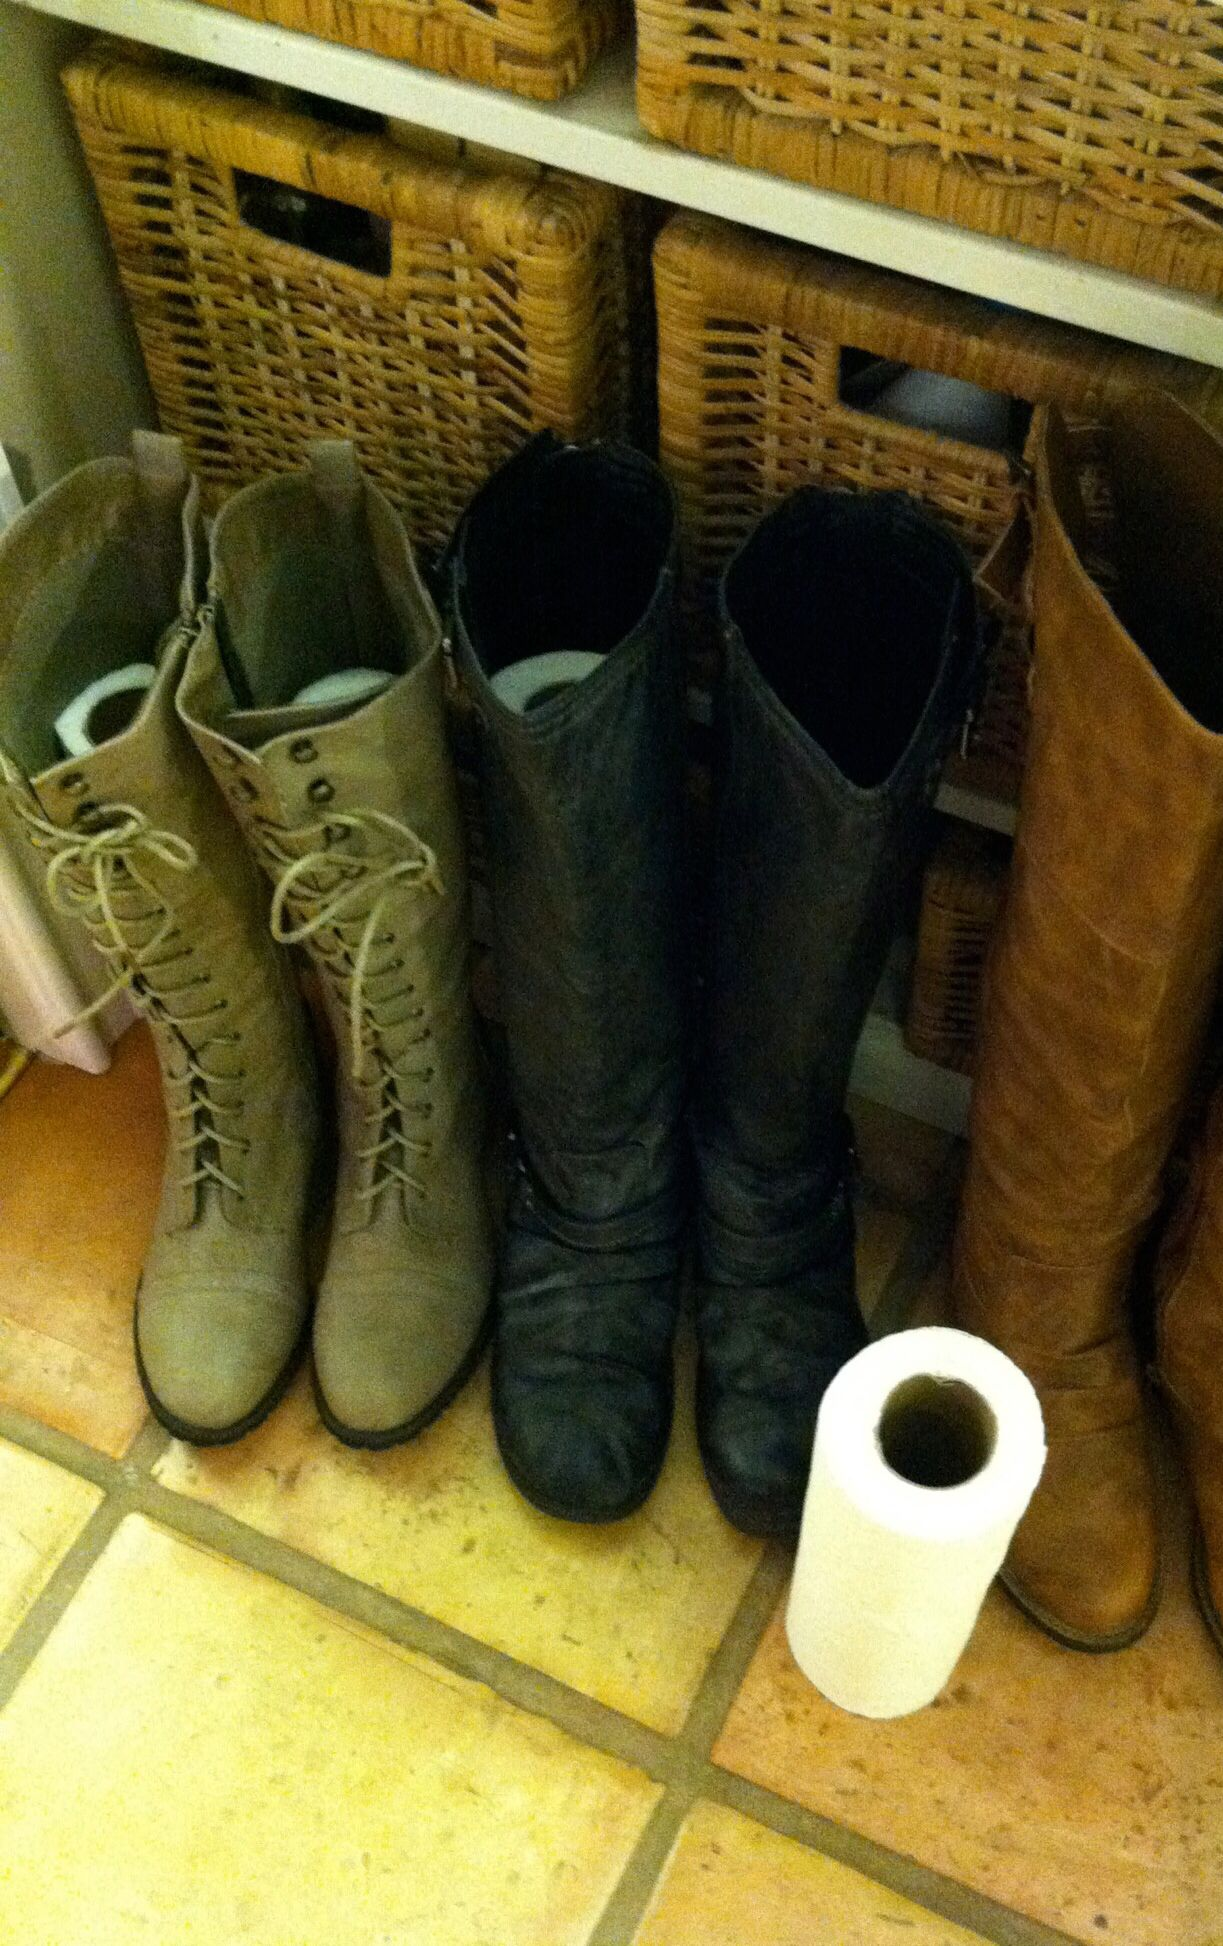 334e0e49c9 How to store your Boots in the closet  Use paper towel rolls inside your  boots to help keep their shape! You can customize the diameter so you dont  stretch ...